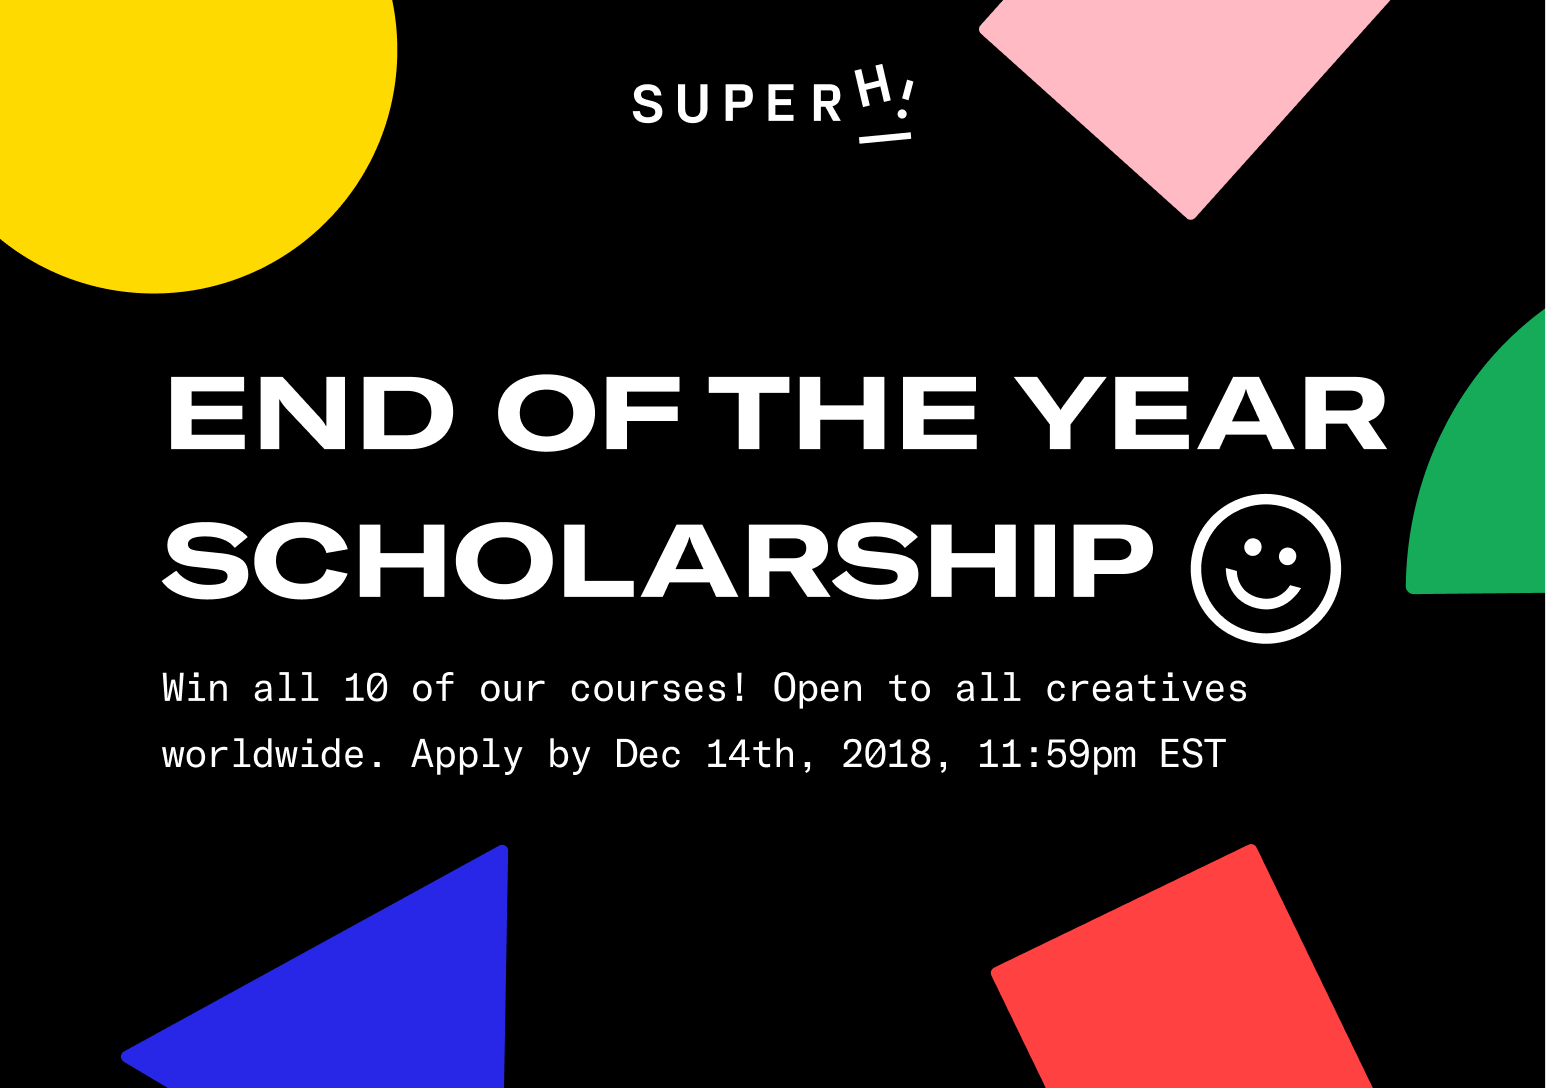 The SuperHi End of Year 2018 Scholarship